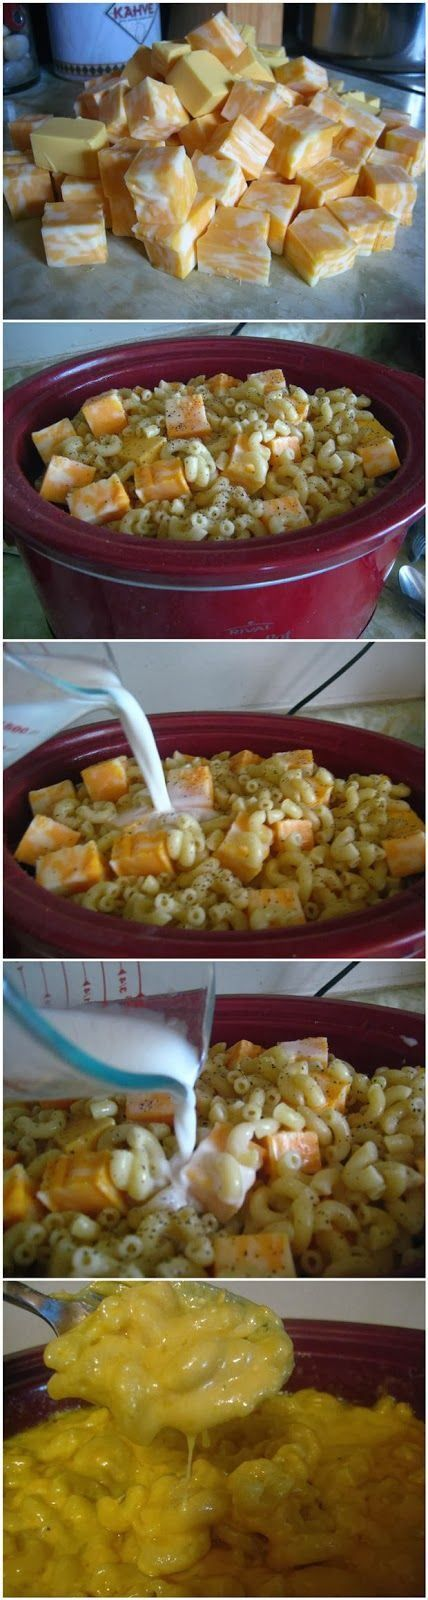 Search Results Crock pot Mac and cheese - Healthy and Diet Friendly Food Recipes. - Eating Yummy